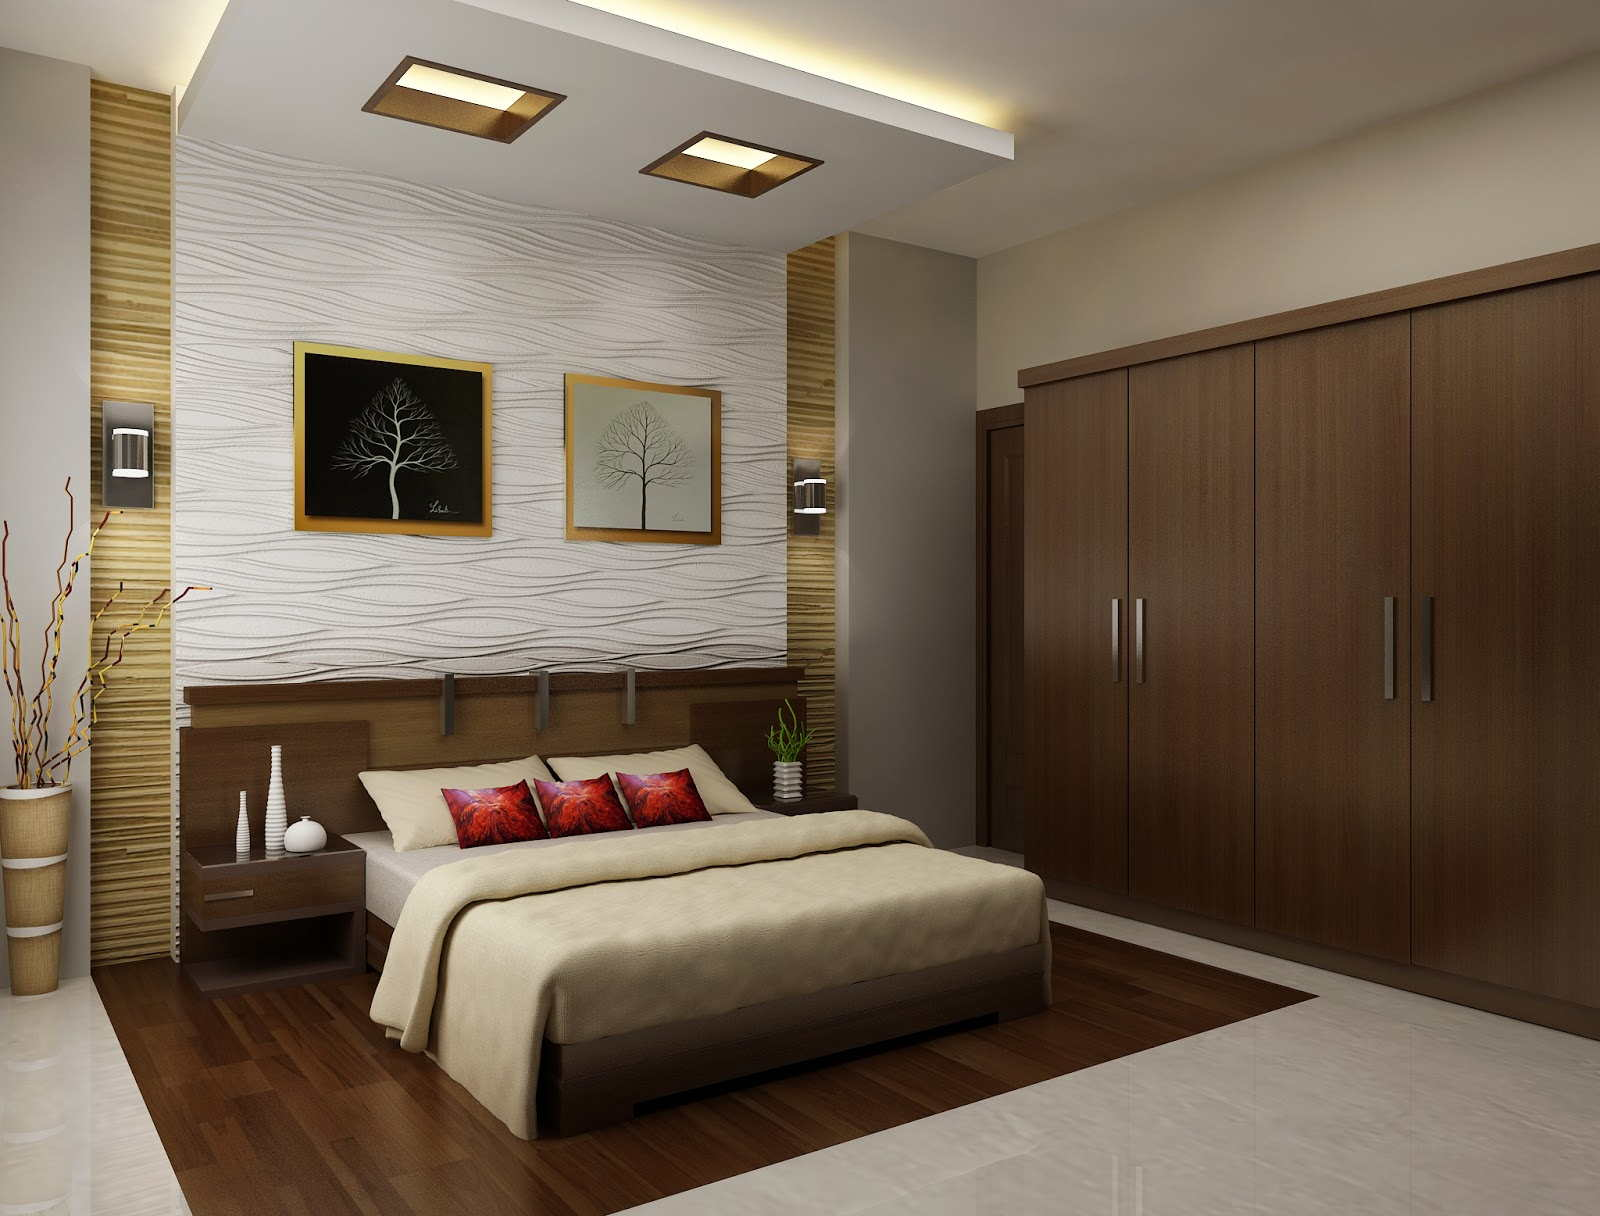 interior bedroom design bedroom interior bedroom interior design